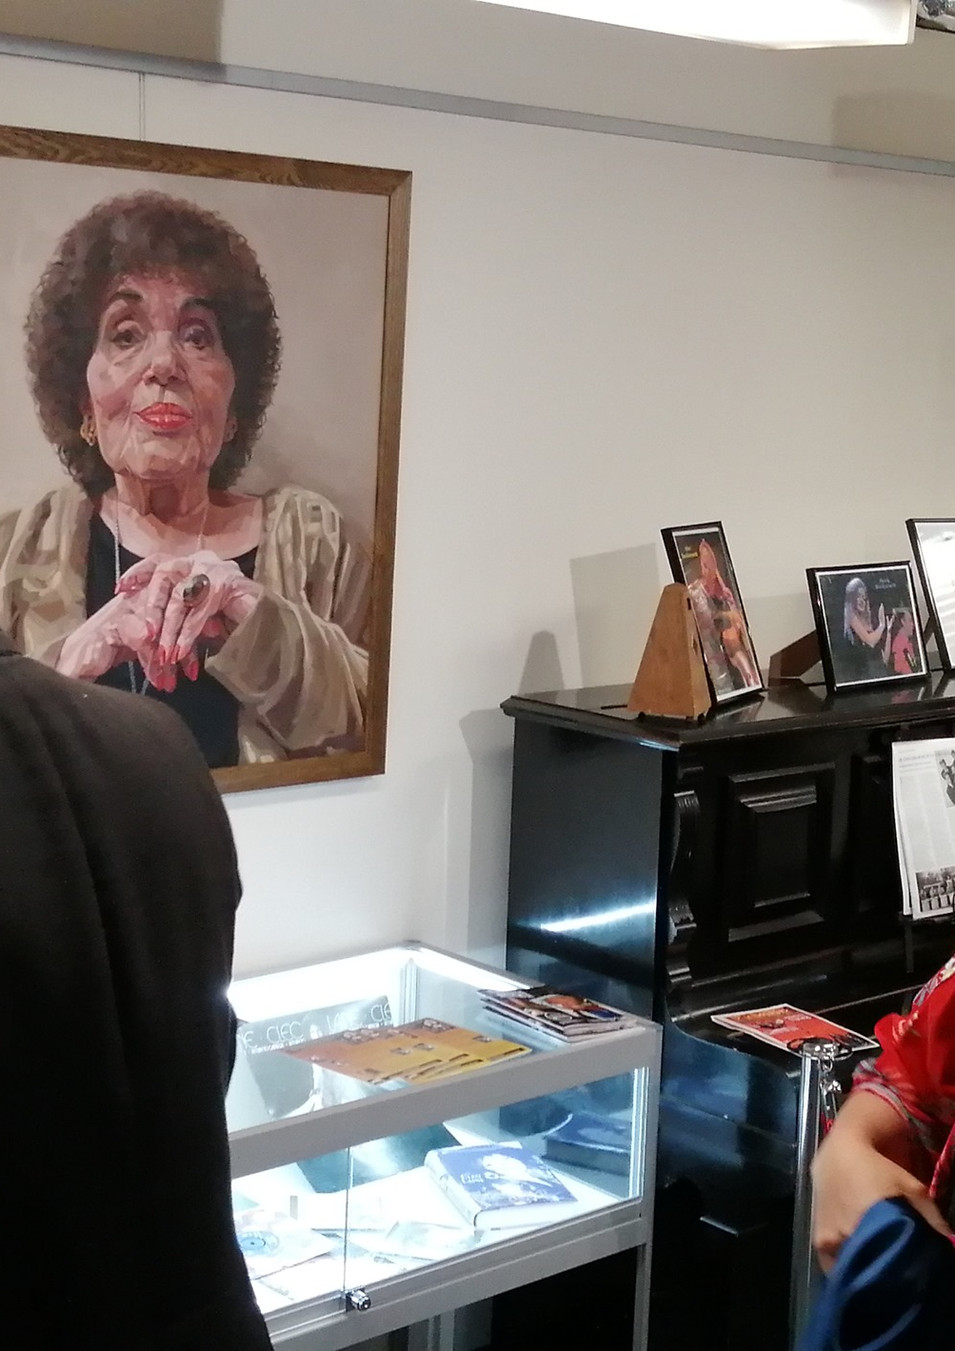 Dame Cleo Laine painting unveiling